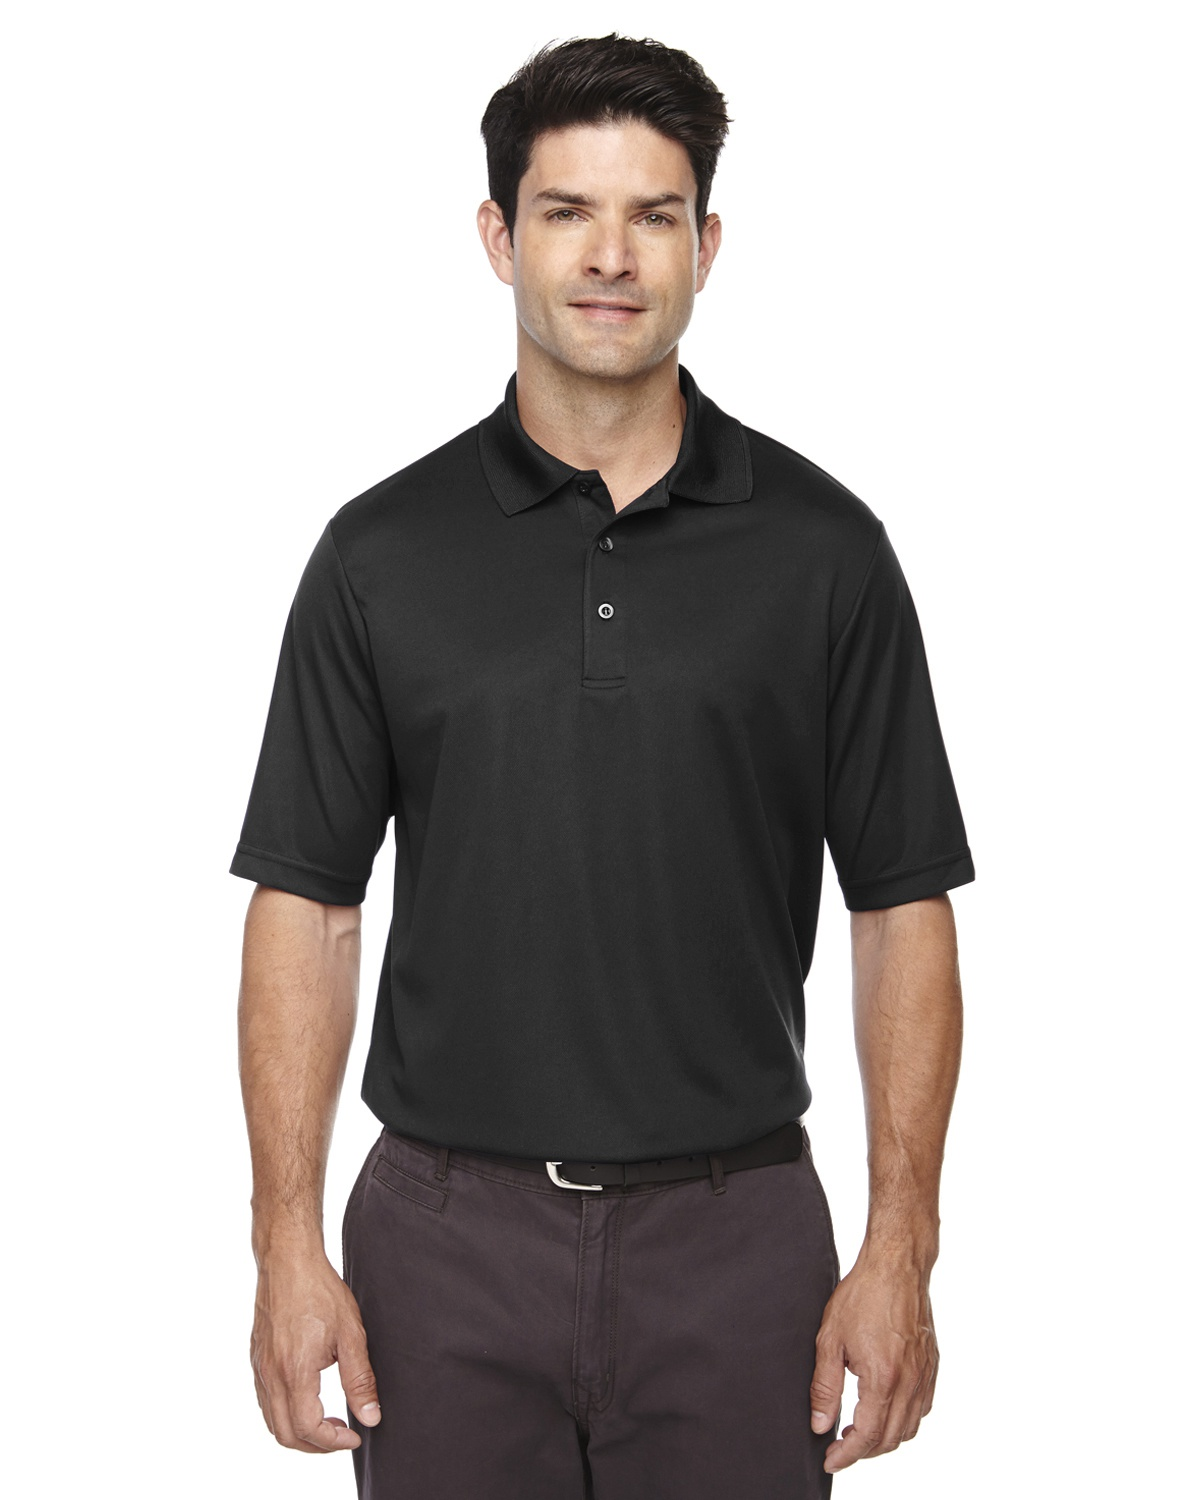 'Ash City - Core 365 88181 Men's Origin Performance Piqué Polo'